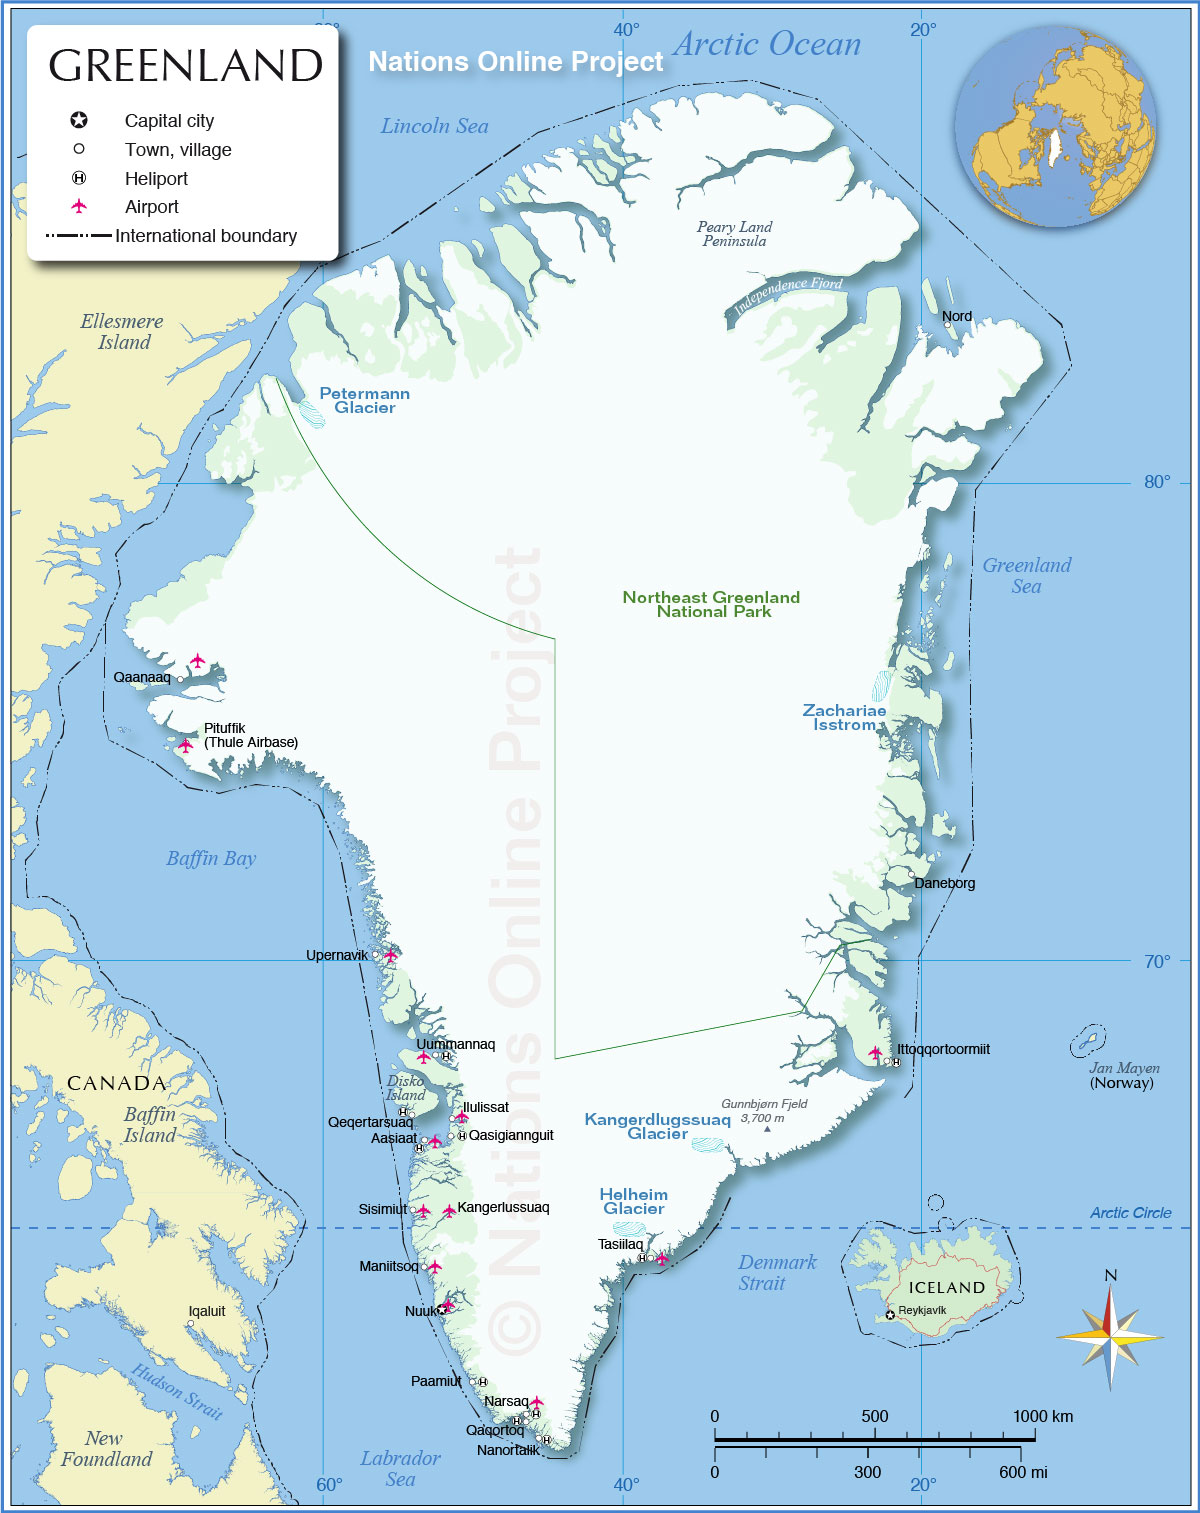 Map of greenland nations online project map of greenland gumiabroncs Gallery